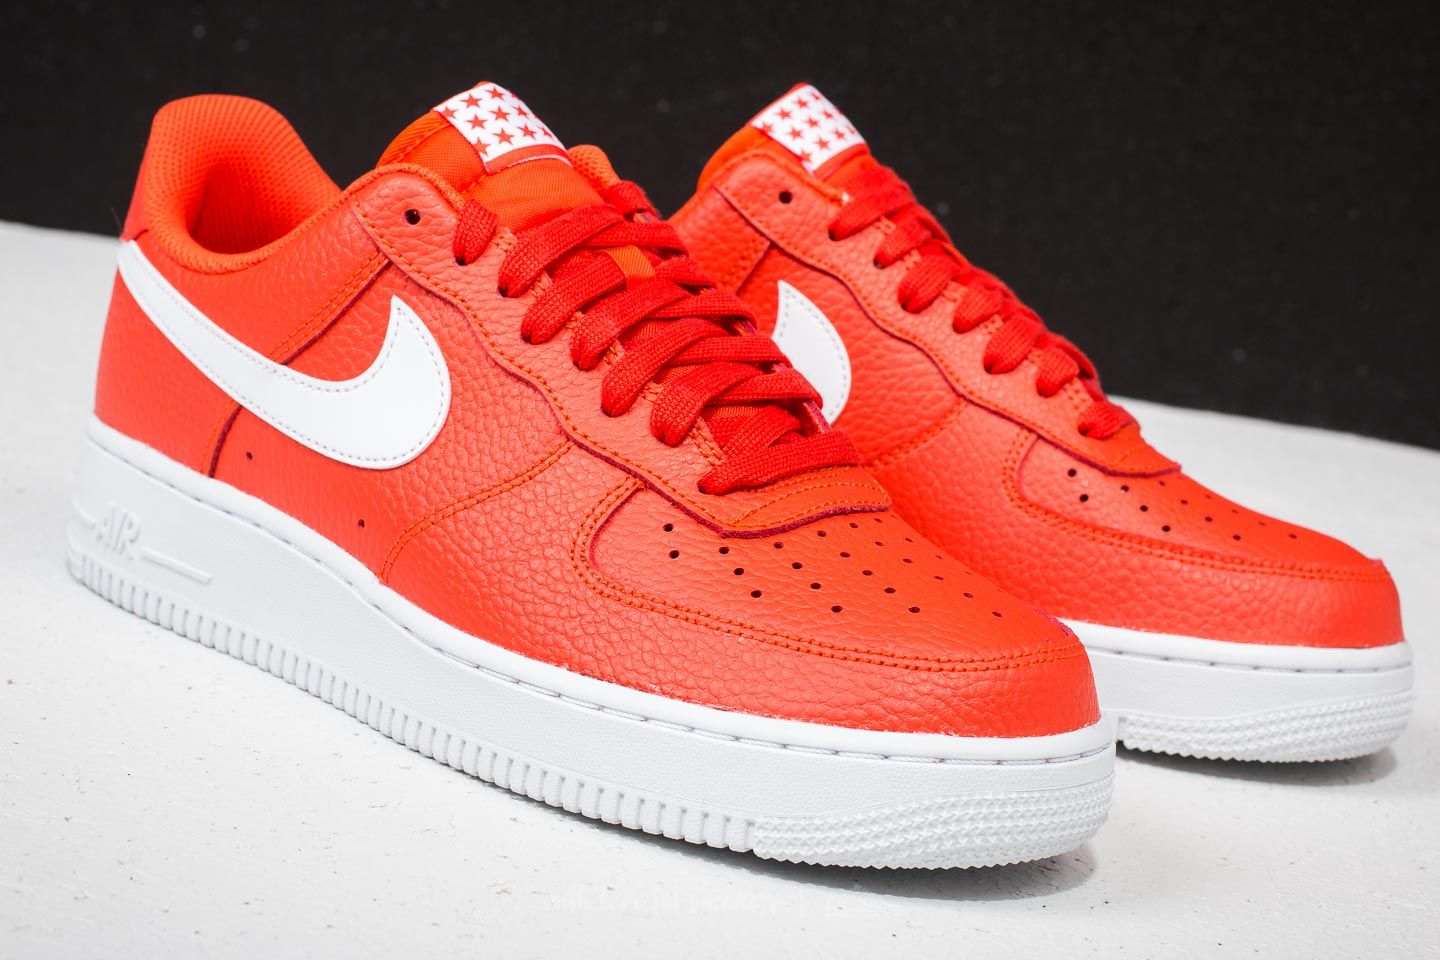 d10feaceb101 ... netherlands nike air force 1 07 team orange white at a great price 86  8a95f 29b60 ...